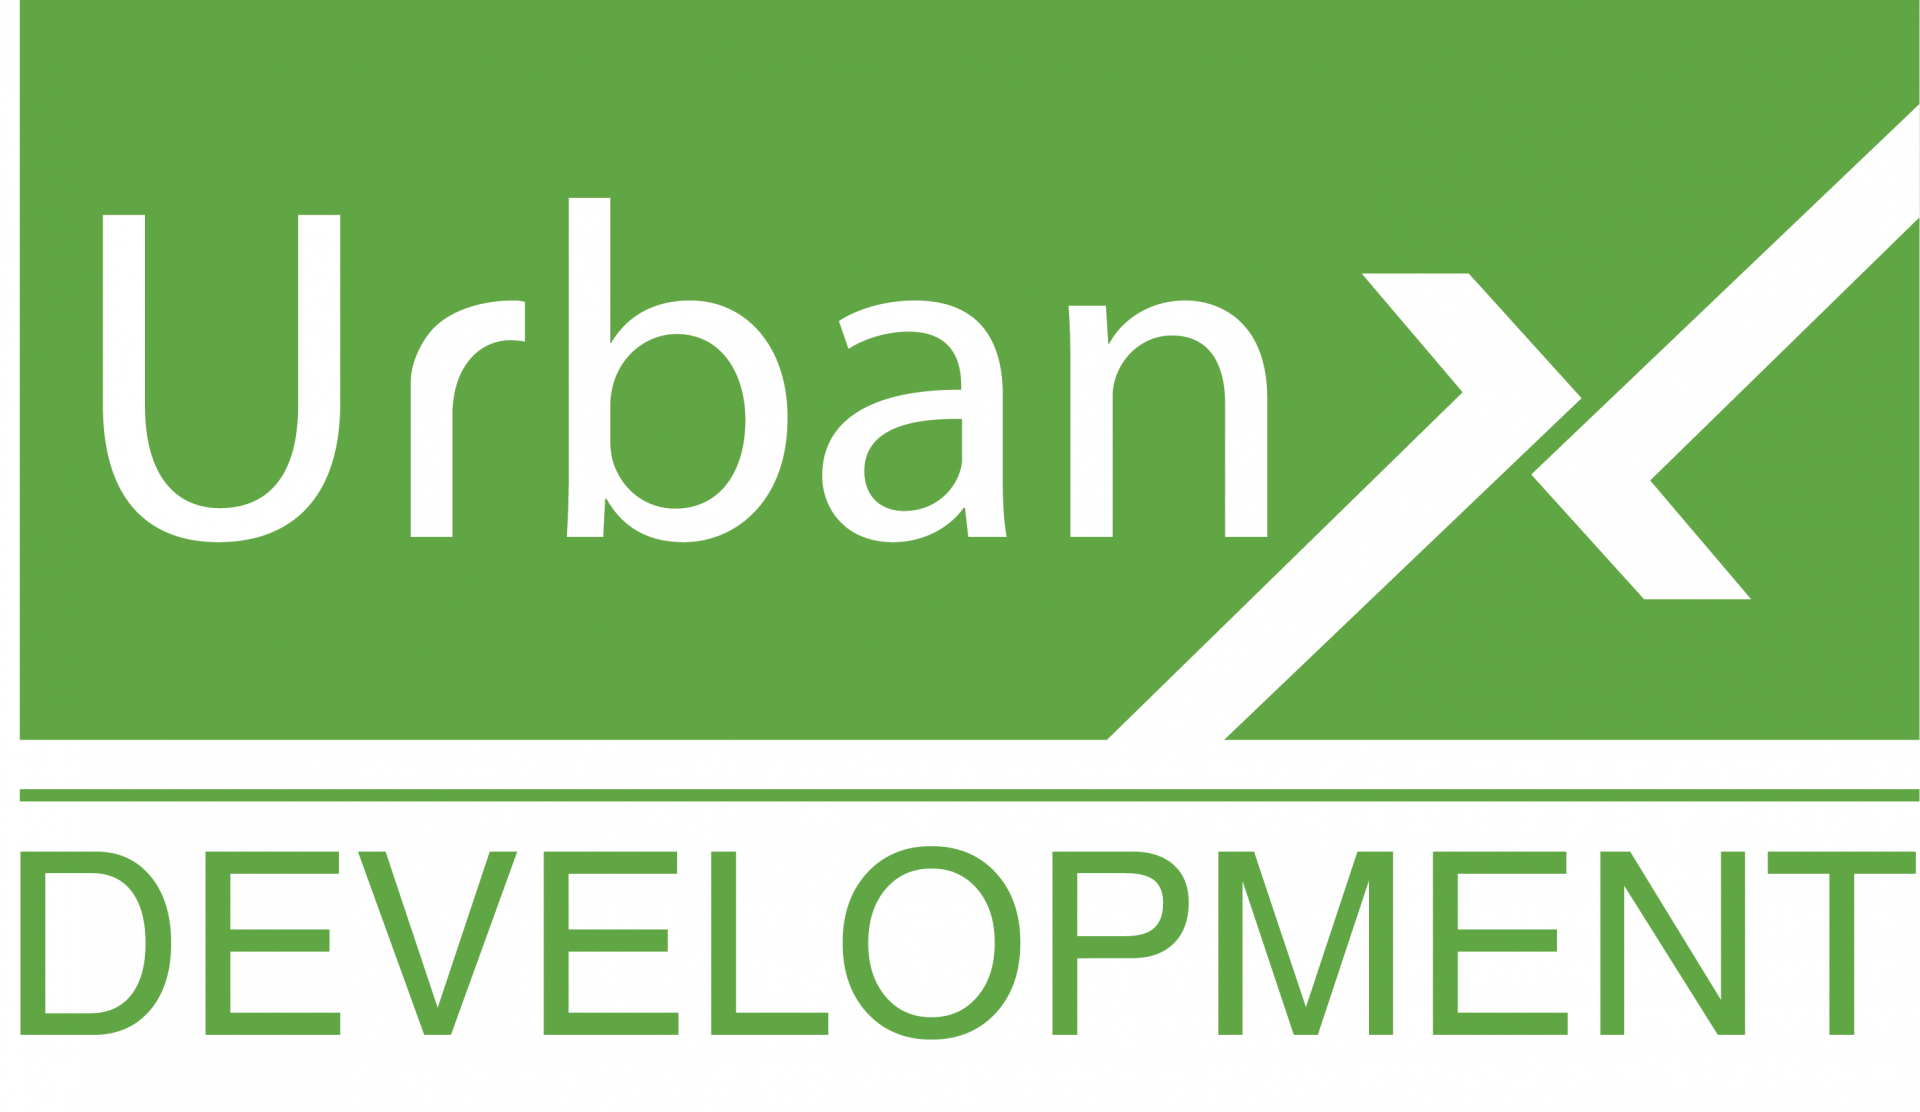 UrbanX Development logo